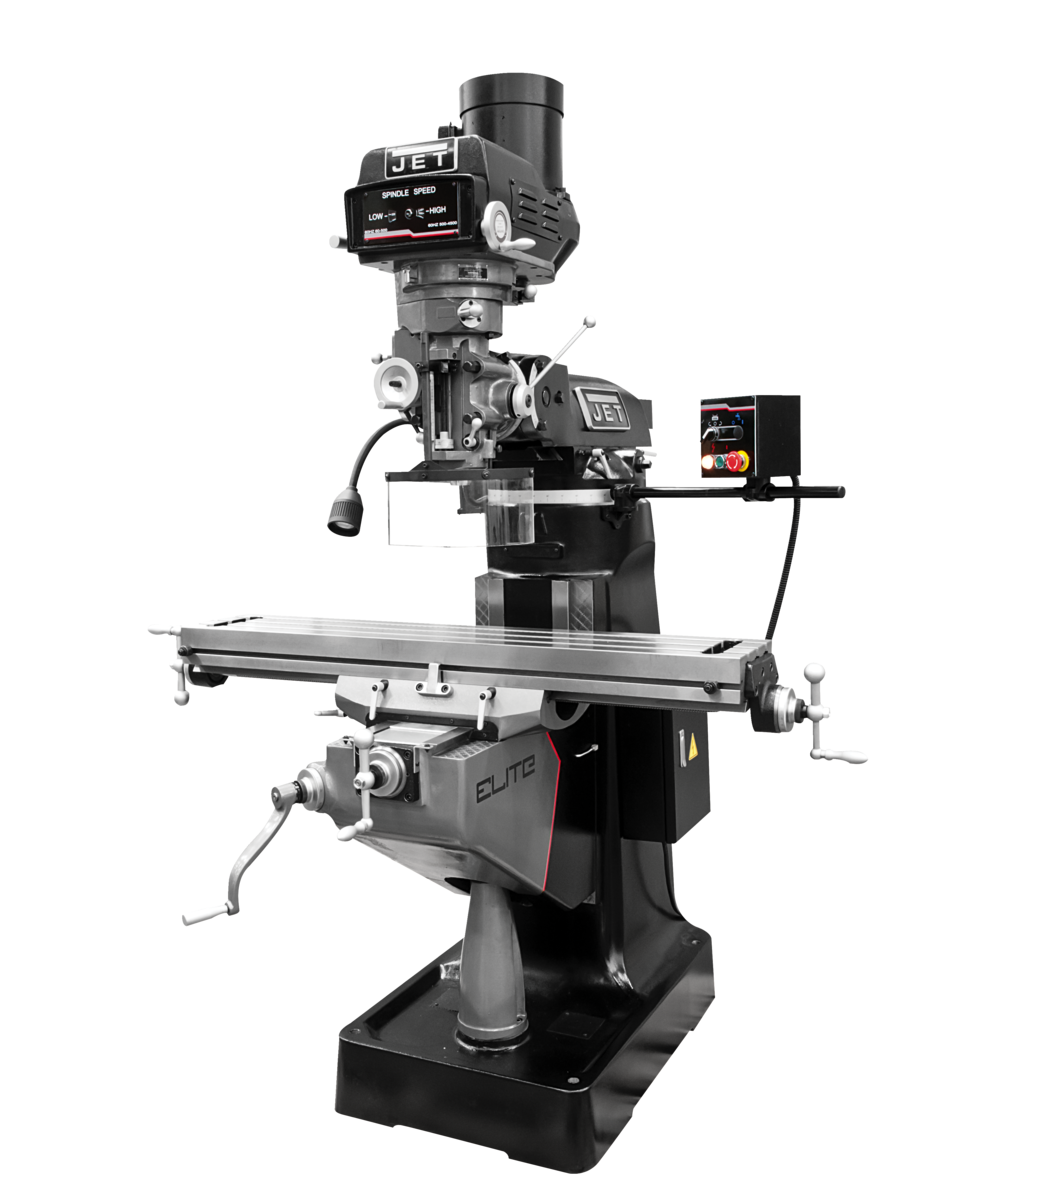 ETM-949 Mill with 3-Axis Newall DP700 (Quill) DRO and Servo X-Axis Powerfeed and USA Air Powered Draw Bar